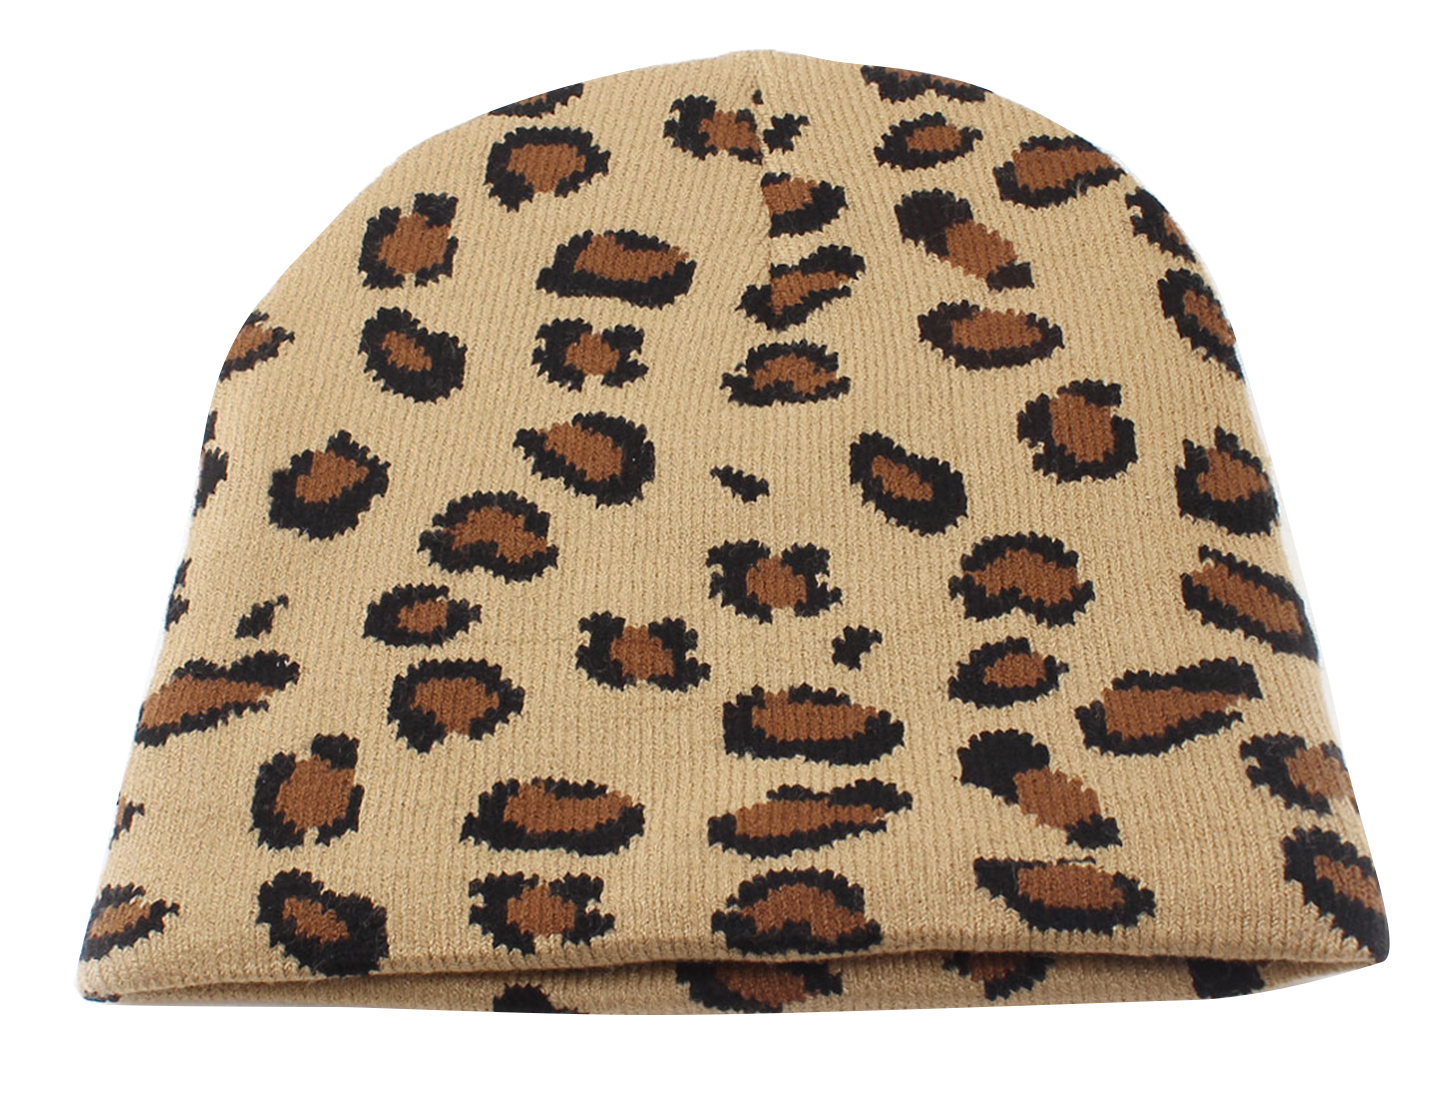 Khaki Leopard Pattern Casual Cap Baggy Beanie Leisure Hat for Women